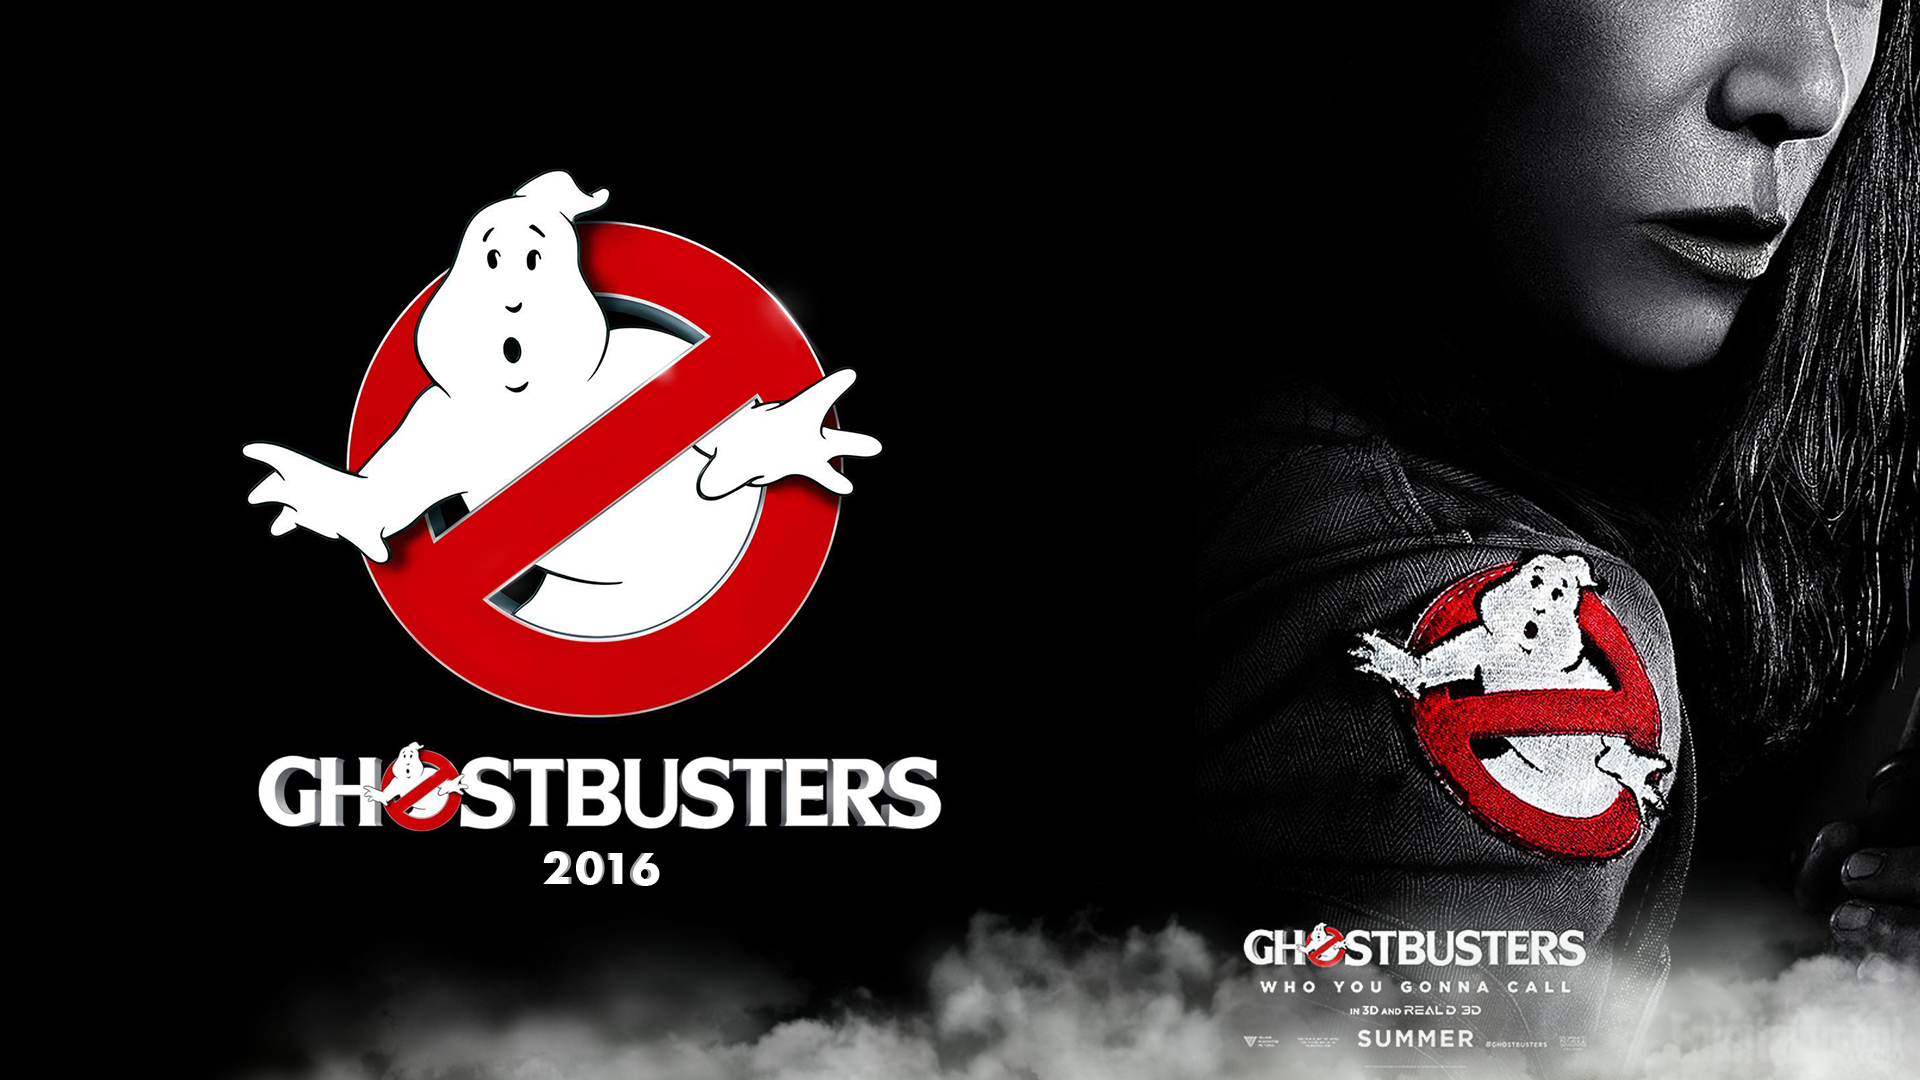 GhostbustersWallpapers NXE Wallpapers